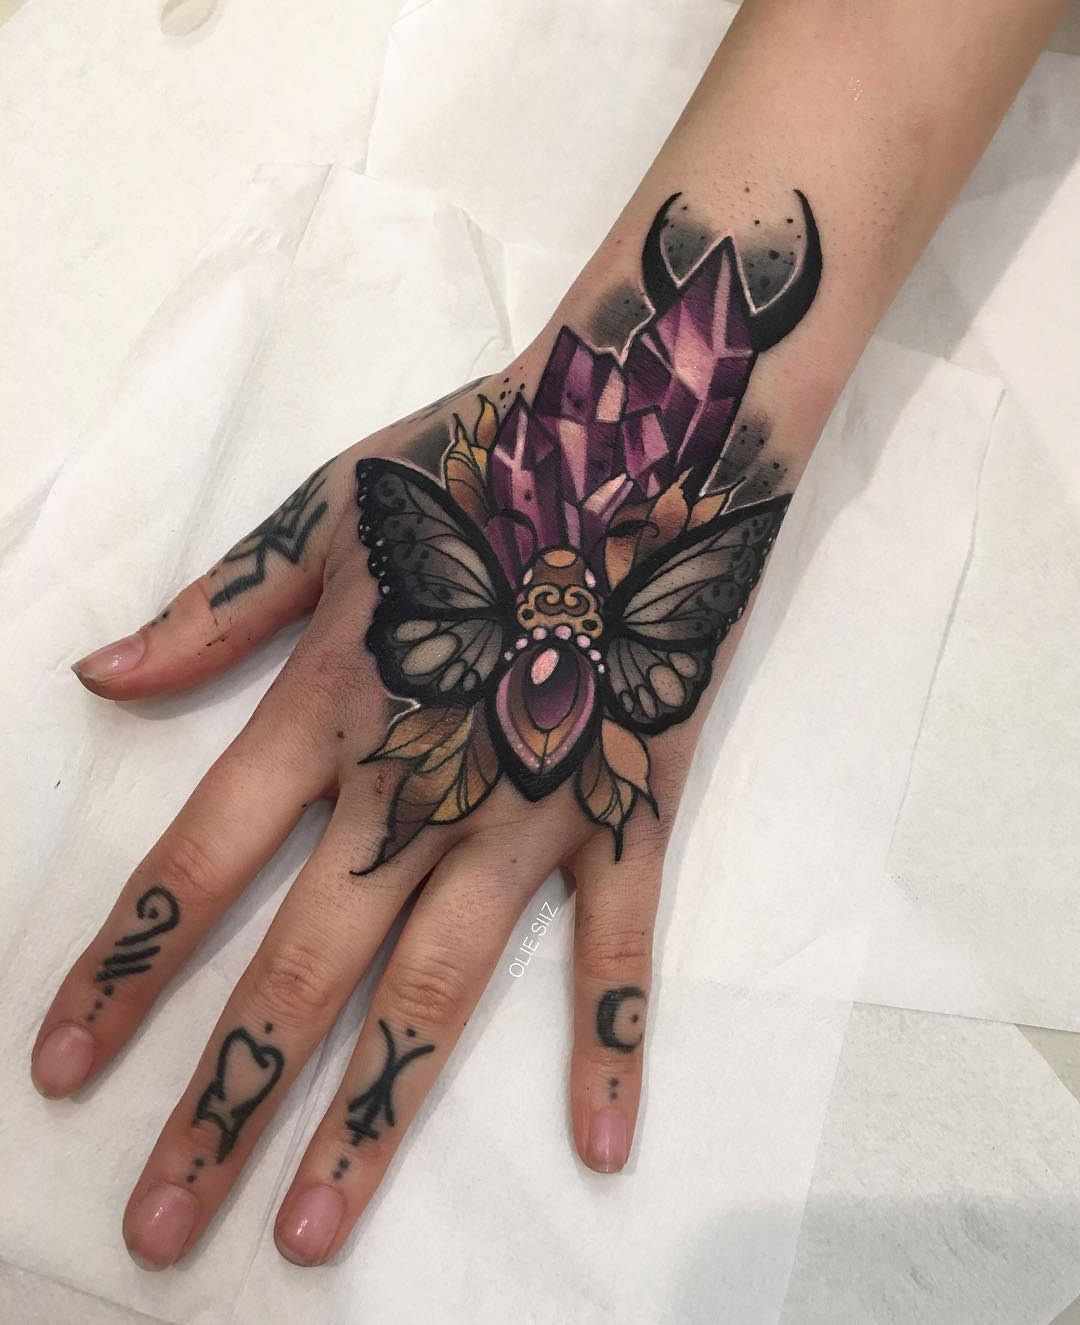 Moth & Crystals, Girls Hand Tattoo Best tattoo ideas